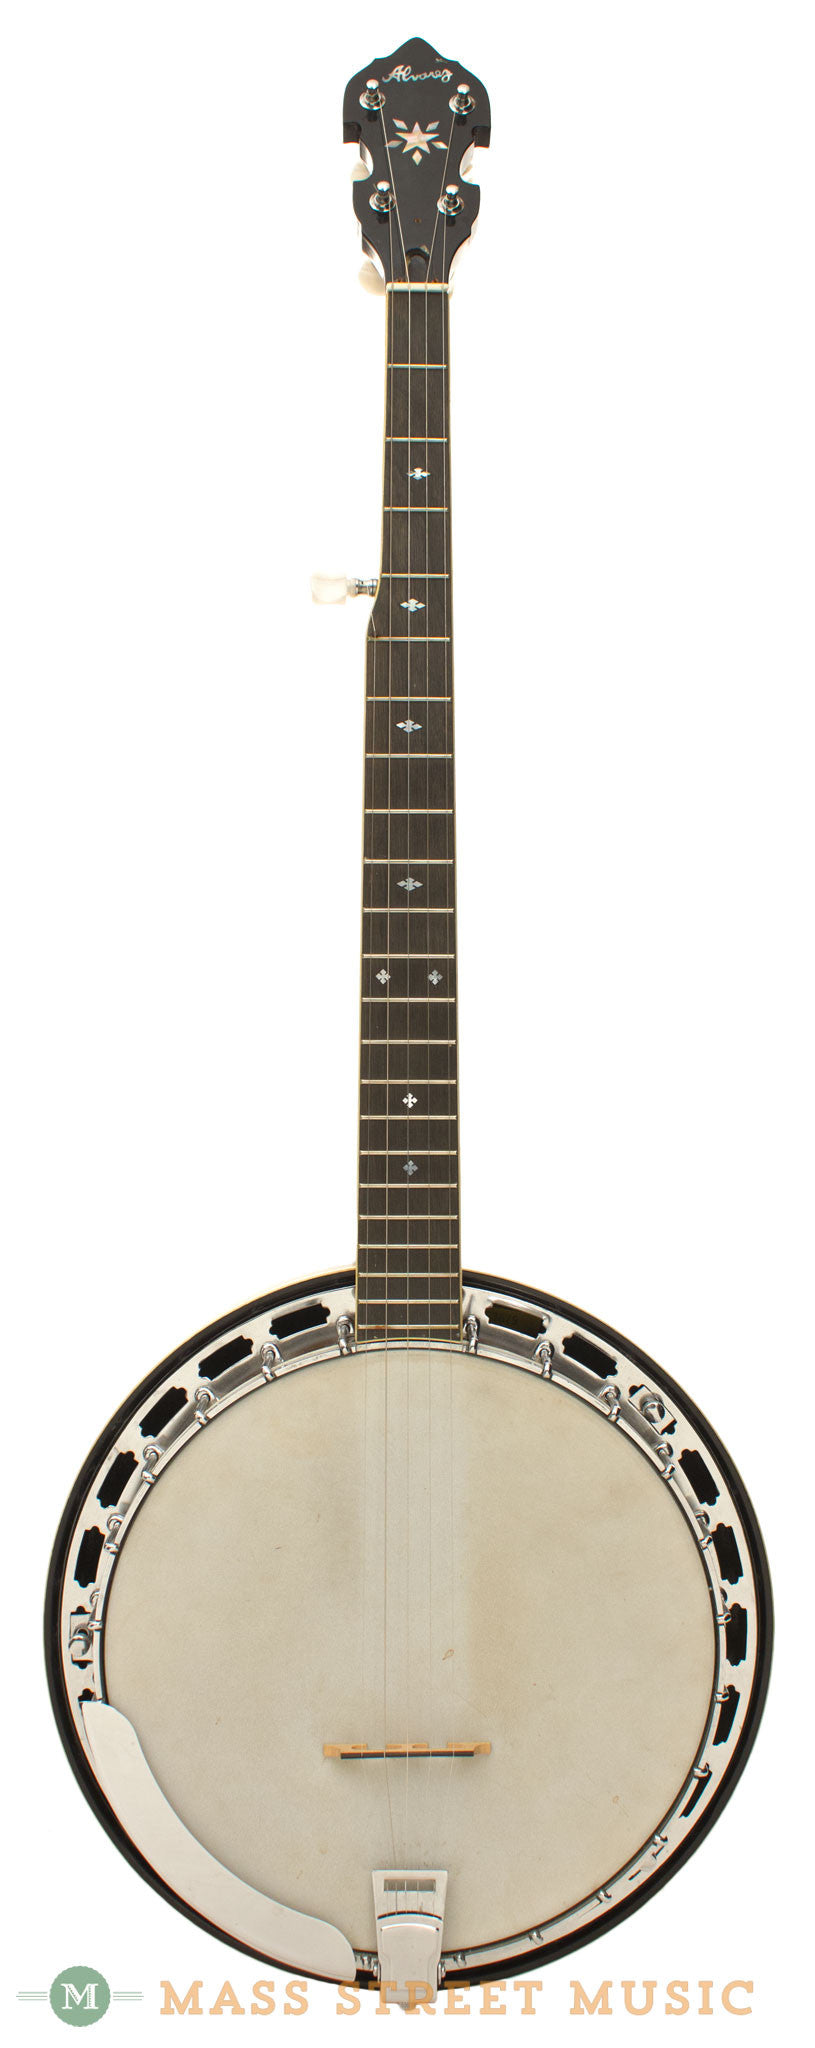 Banjo with chubby parkers autograph